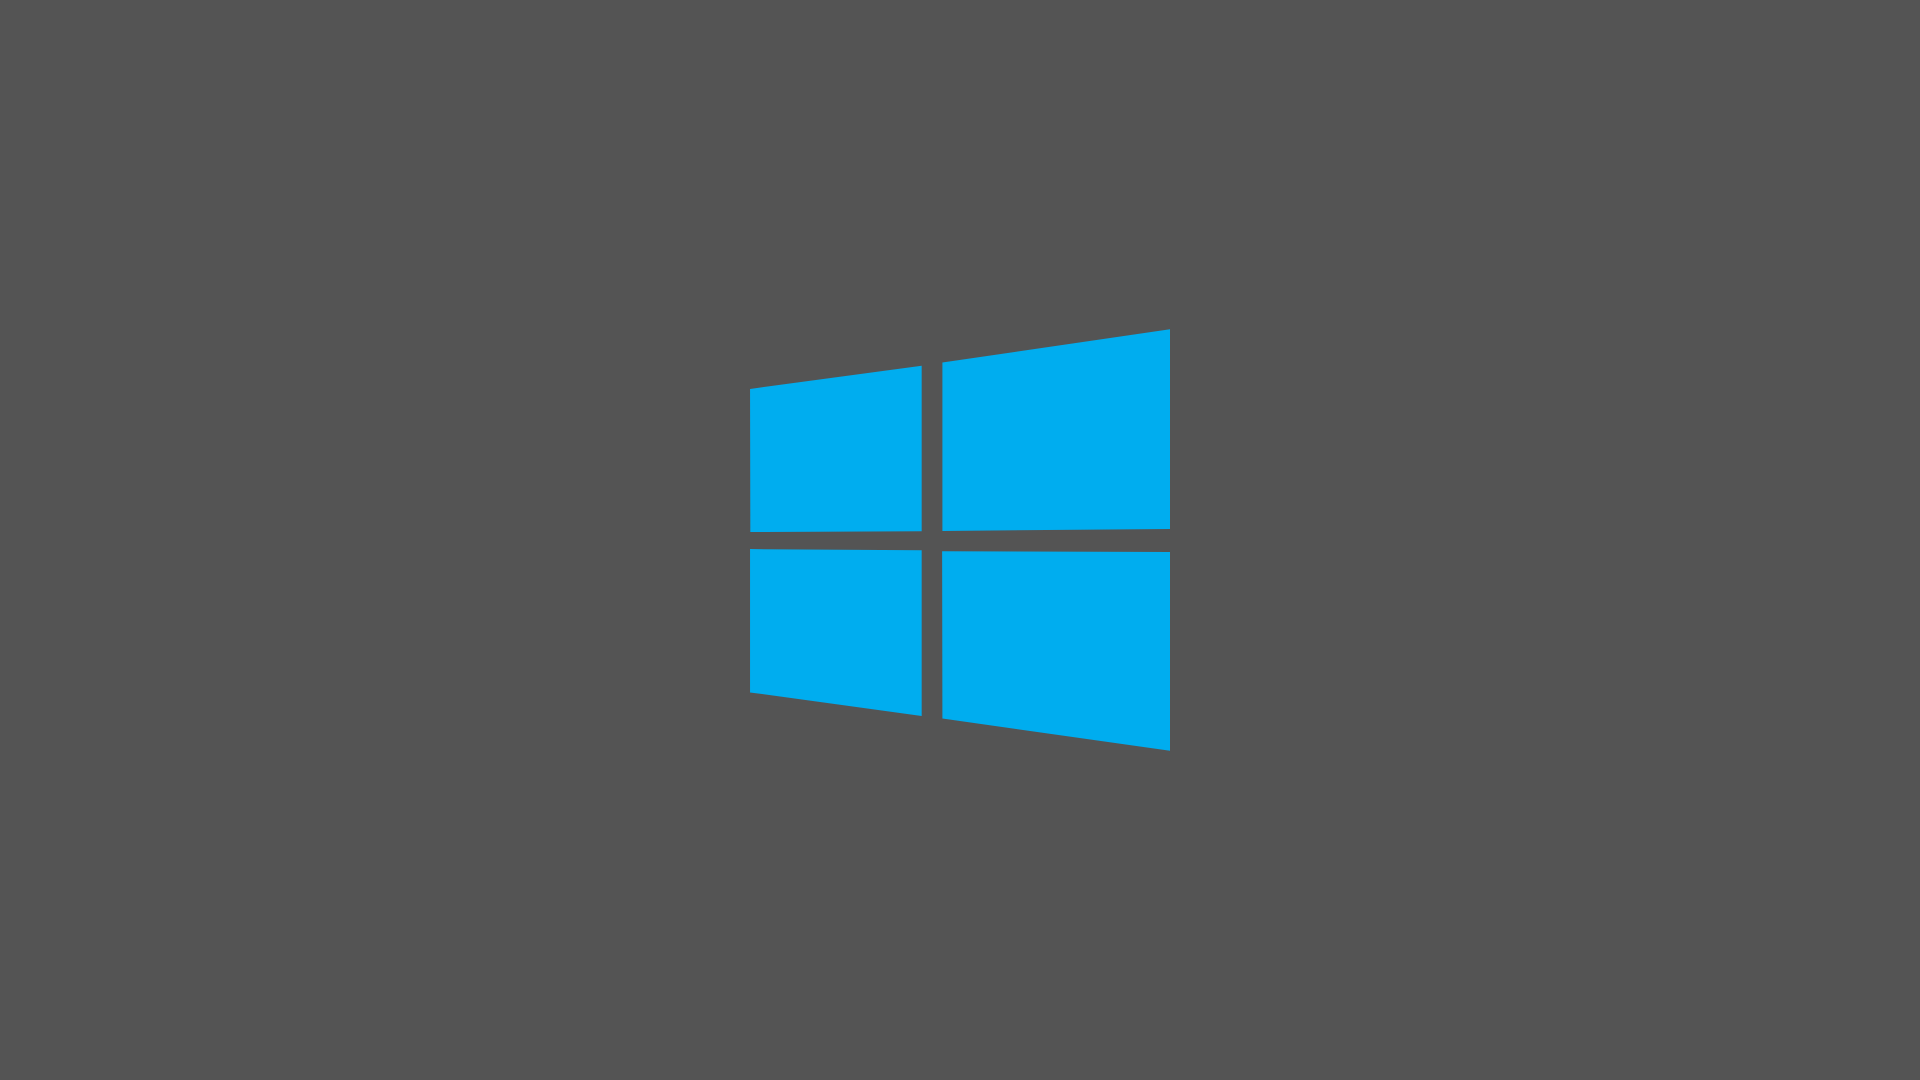 descargar iso windows 10 single language español 64 bits